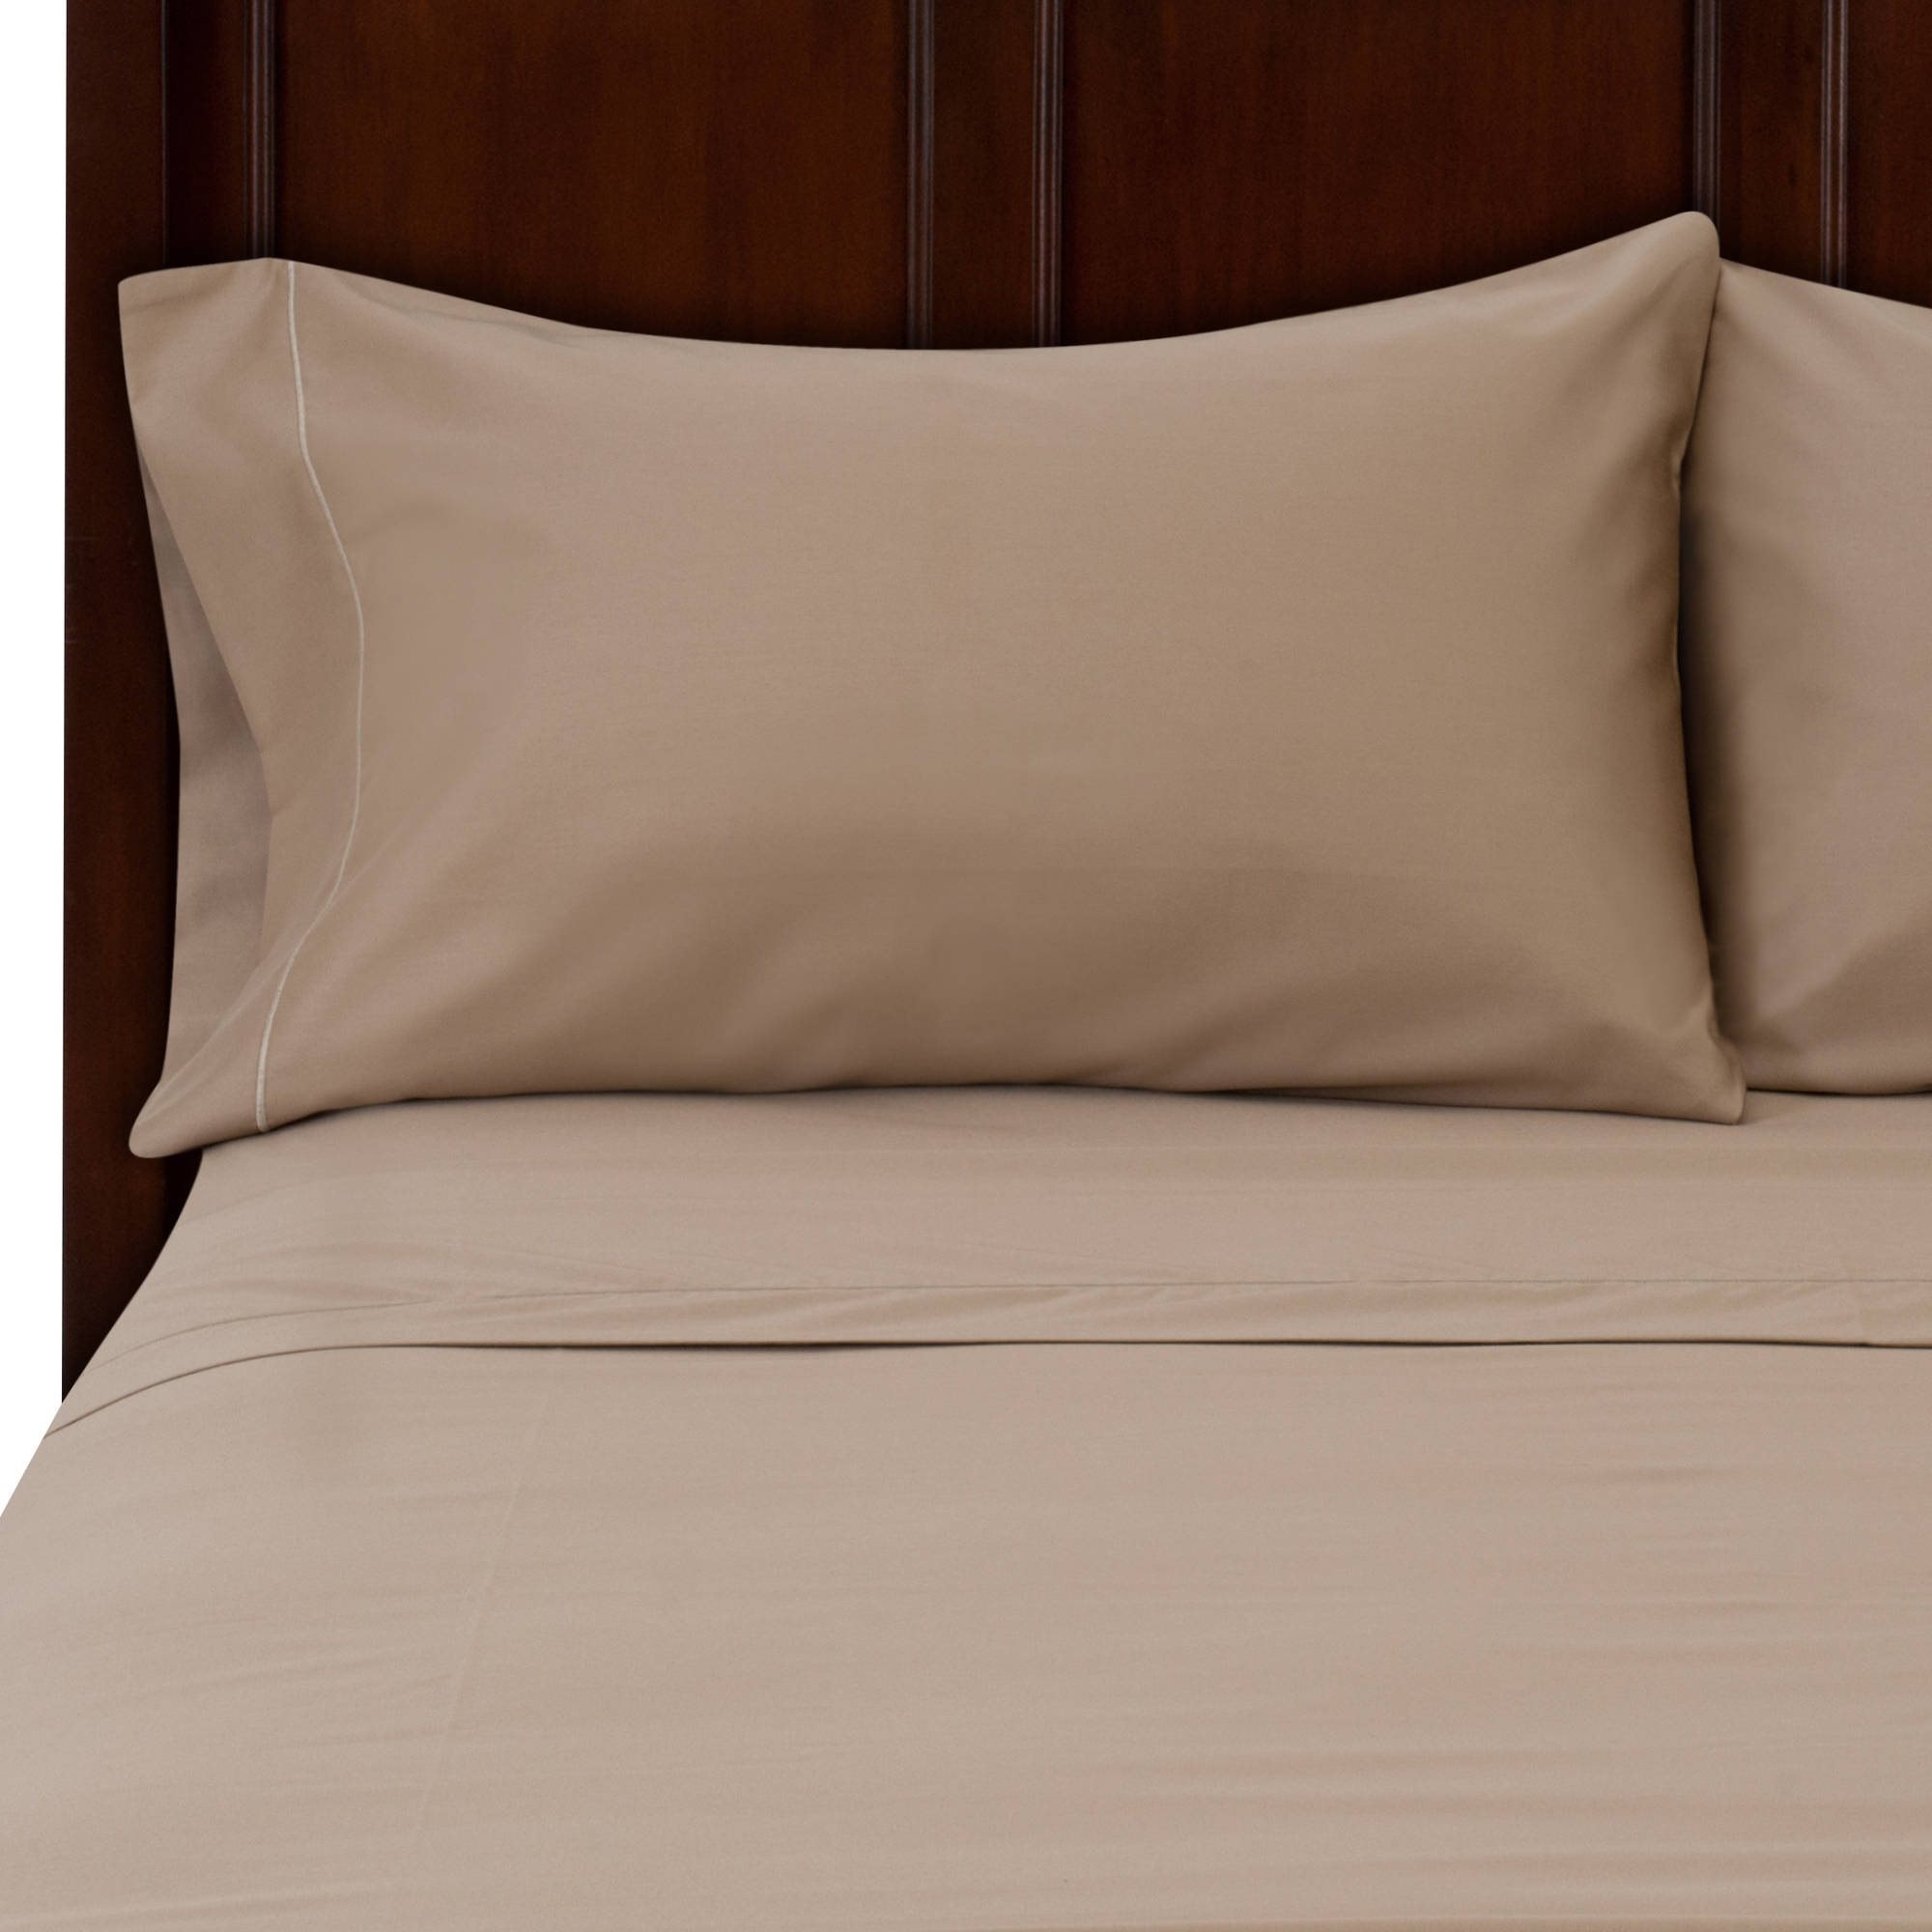 Hotel Style Egyptian Cotton 500 Thread Count Wrinkle Free True Grip Bedding Sheet Set